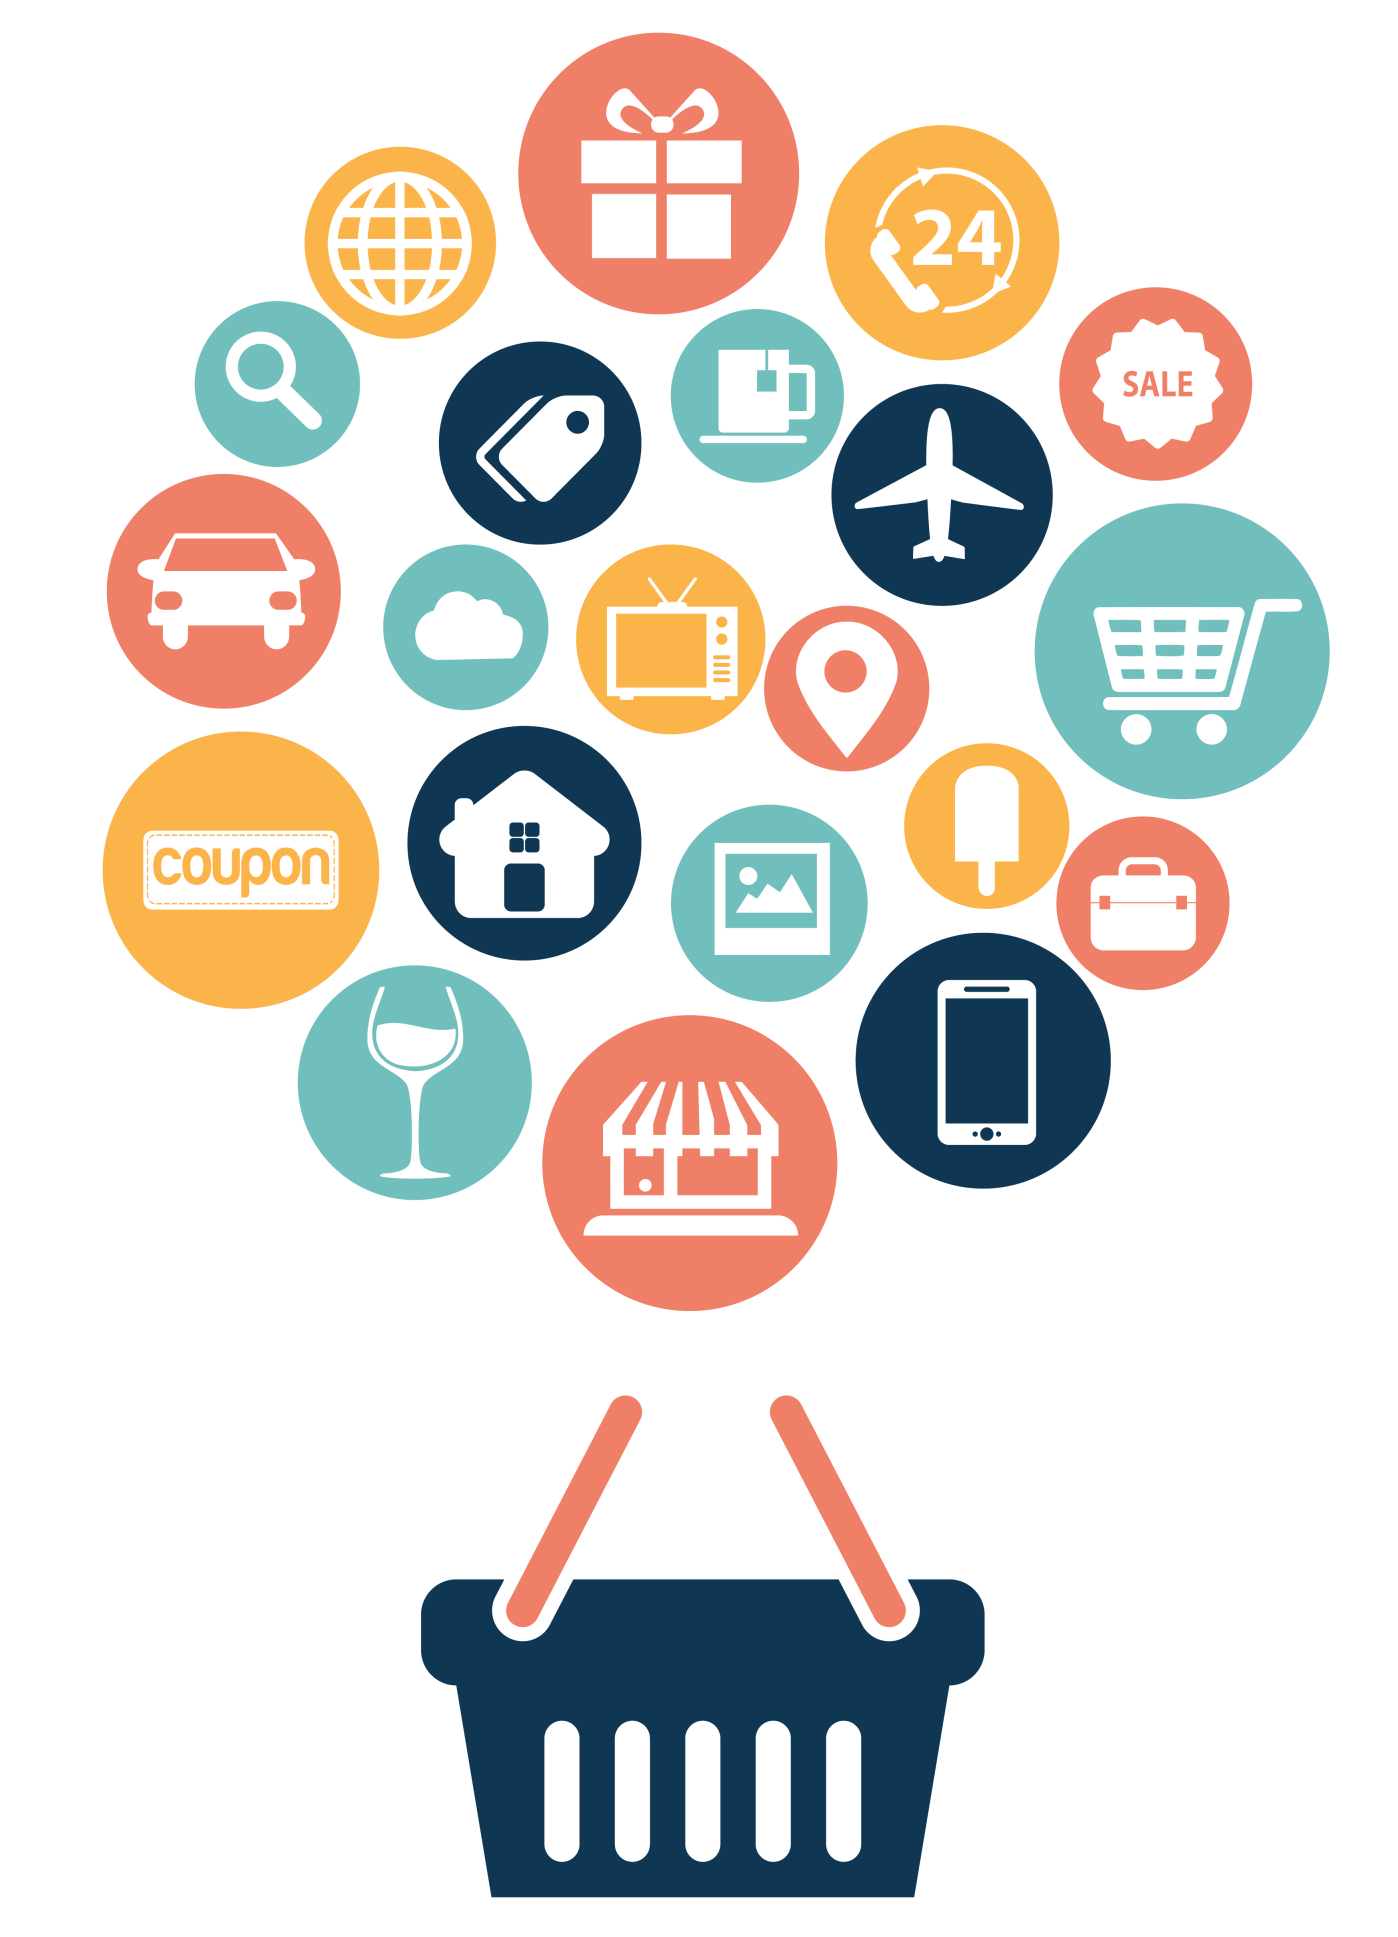 Development Web Material Shopping Internet E-Commerce Vector PNG Image